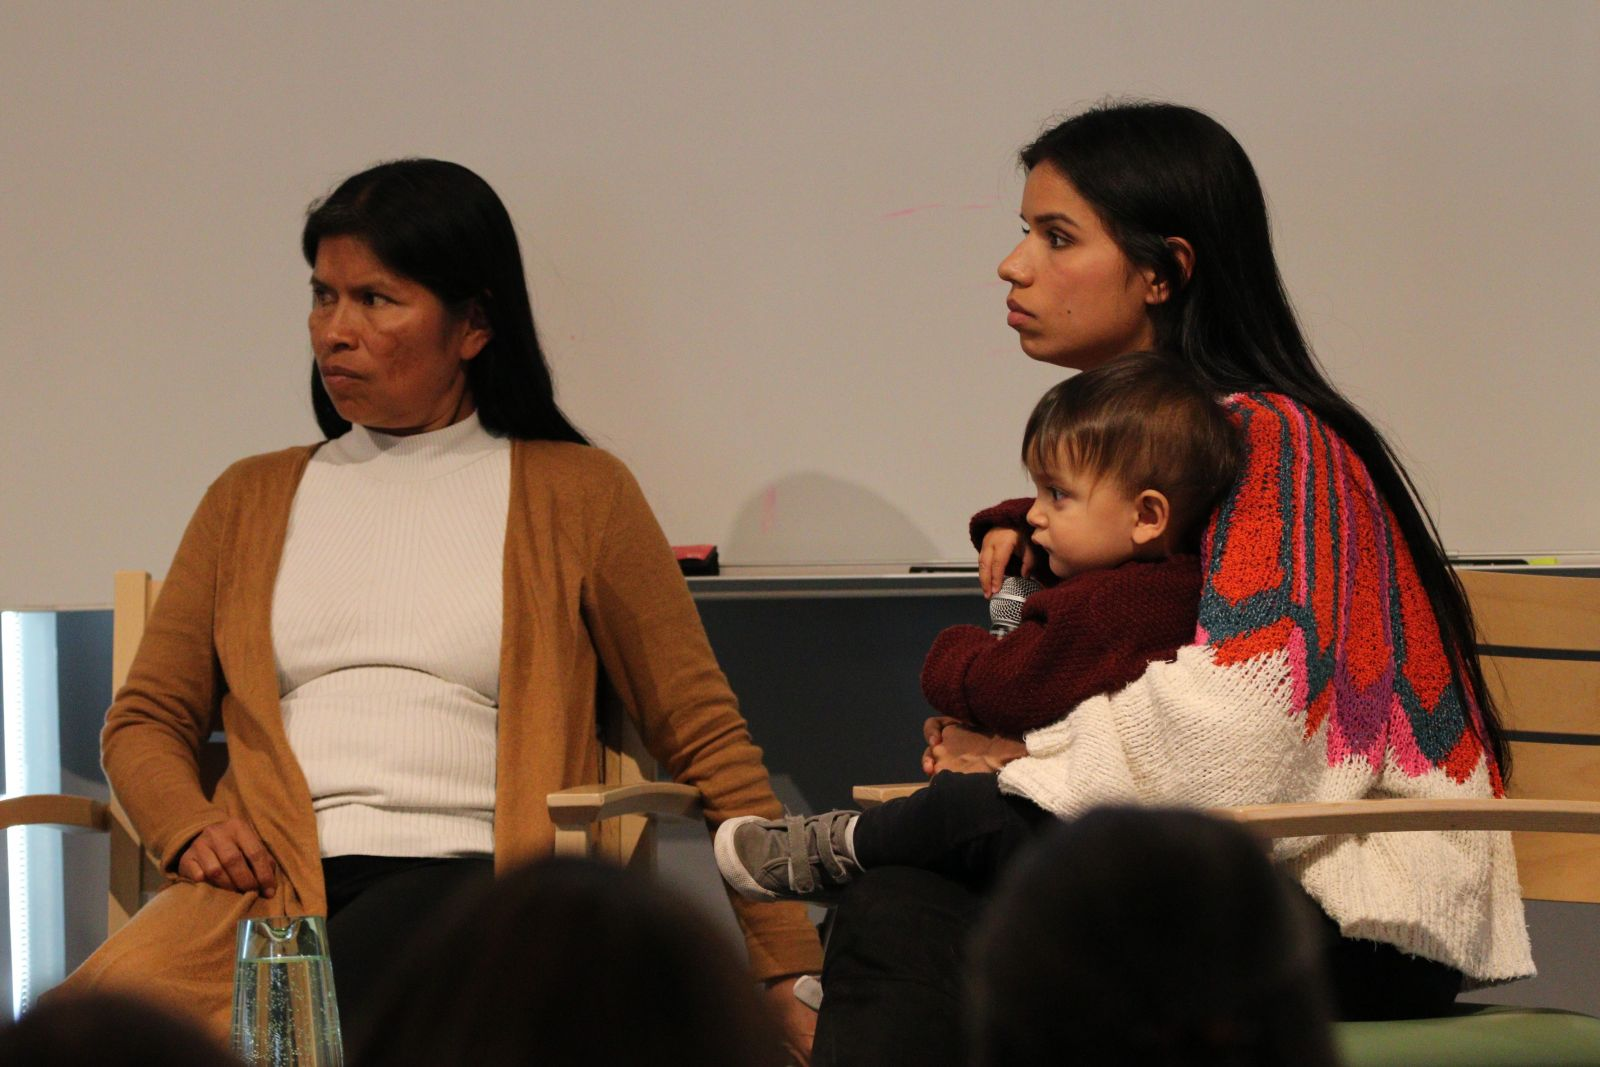 Noemi and Nina Gualinga, leaders from the Kichwa Sarayaku Community in the Ecuatorian Amazon, shared their insights on political representation of indigenous women in their country. Here they are pictured with Nina's son, Tiam.